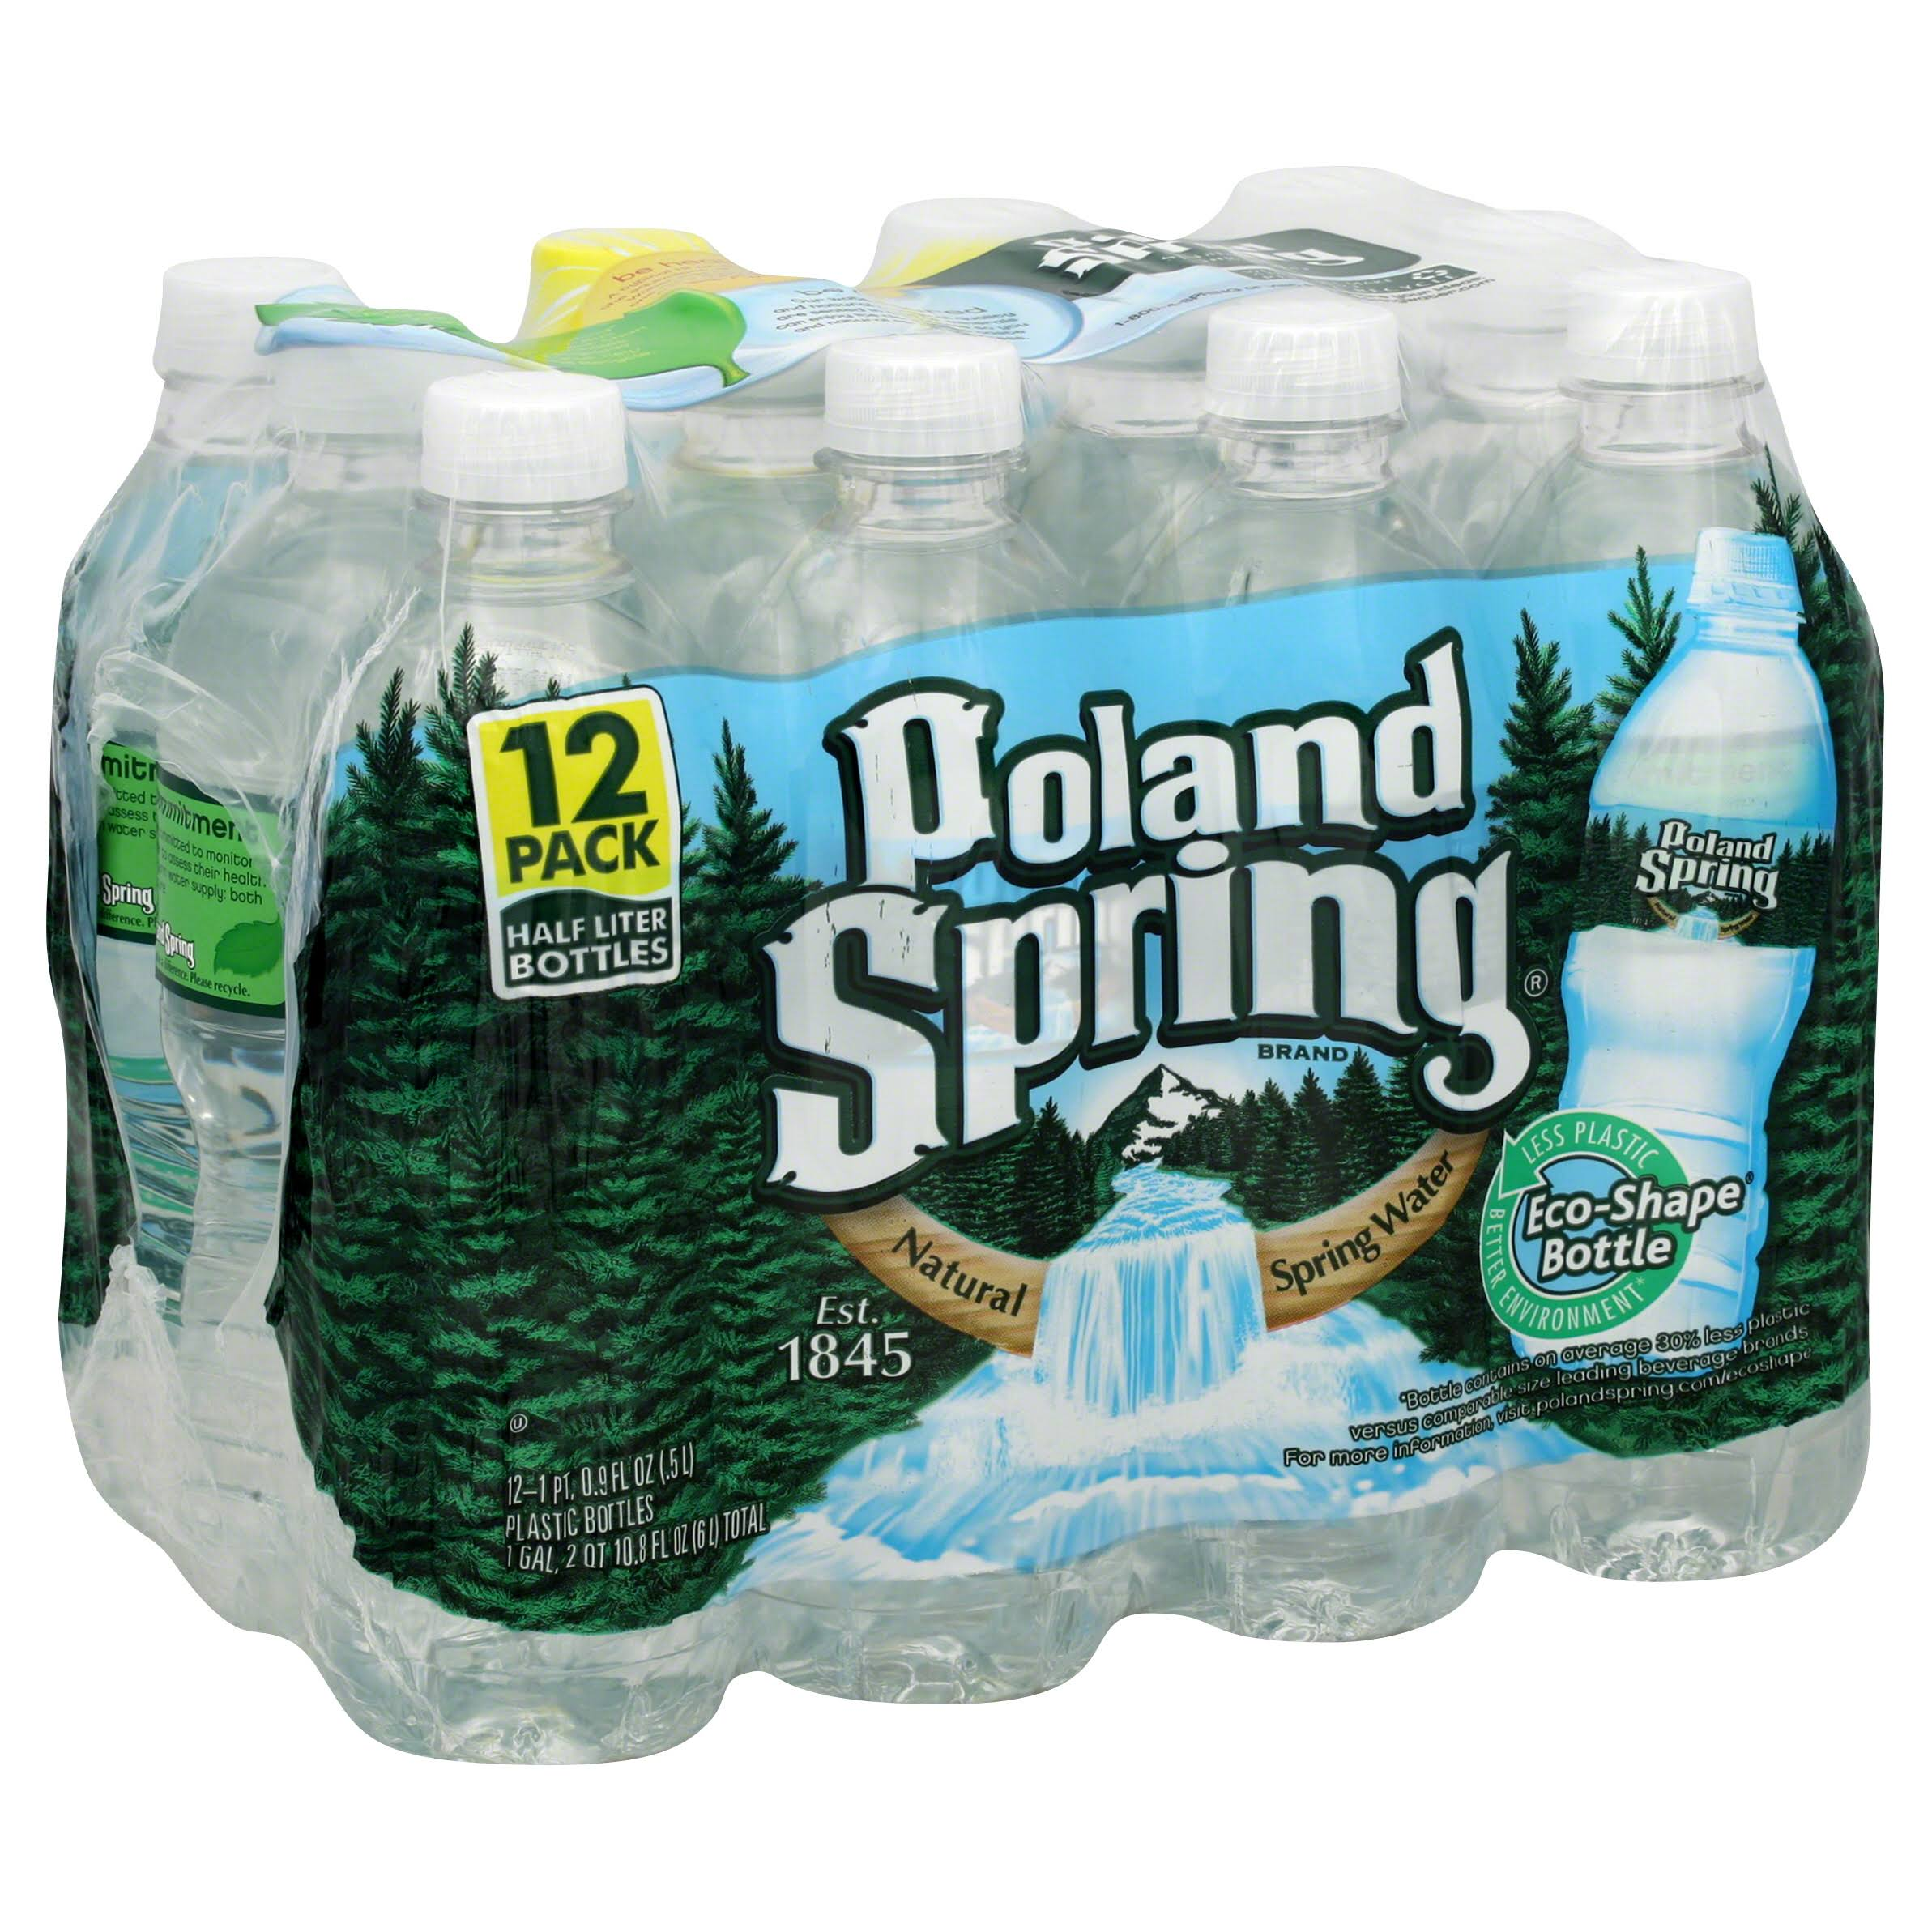 Poland Spring Natural Spring Water - 12 Pack, 0.5L